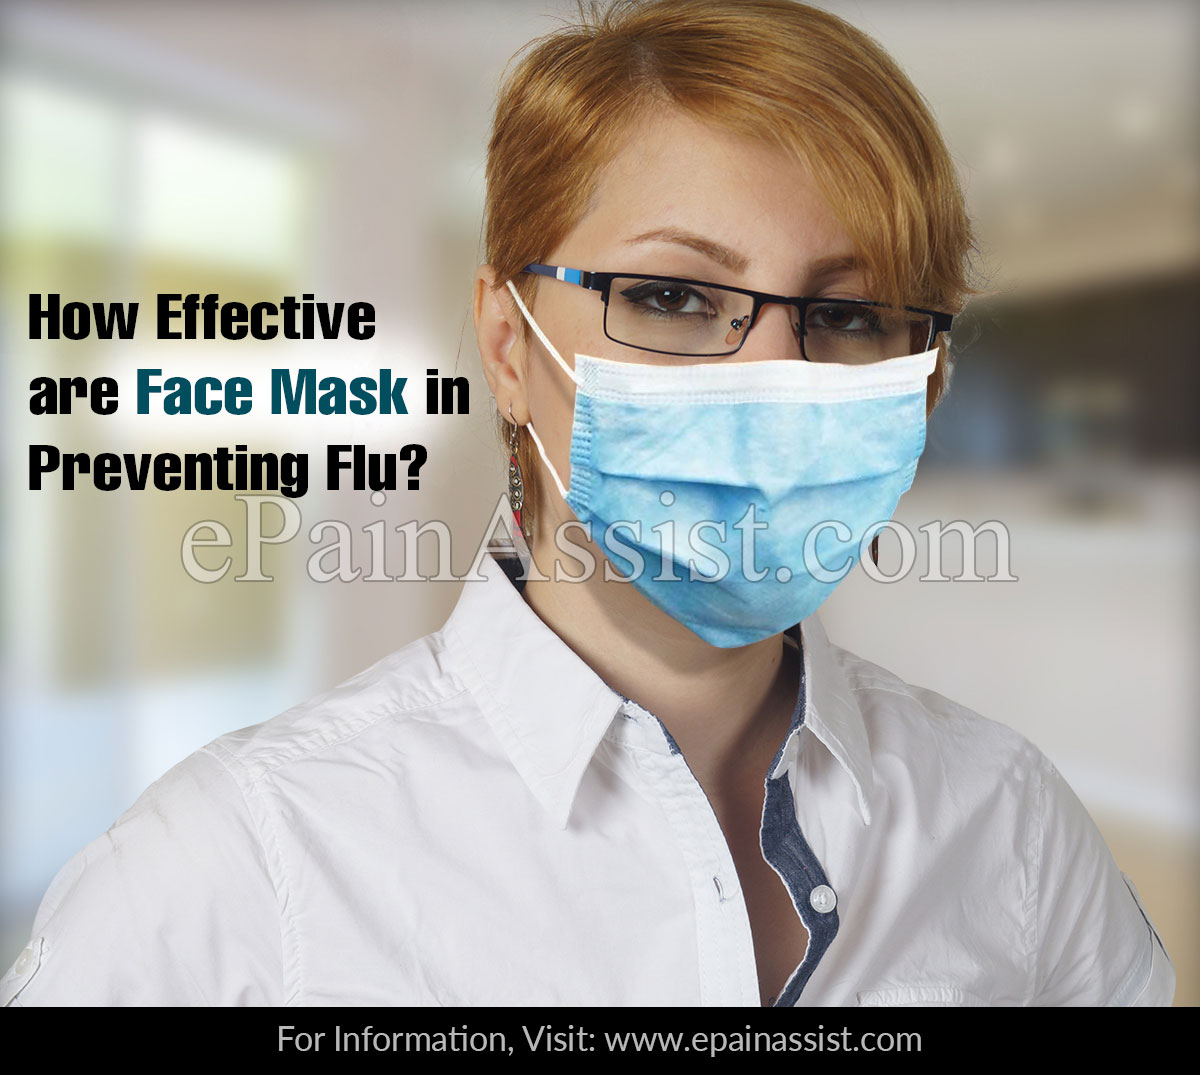 How Effective are Face Mask in Preventing Flu?